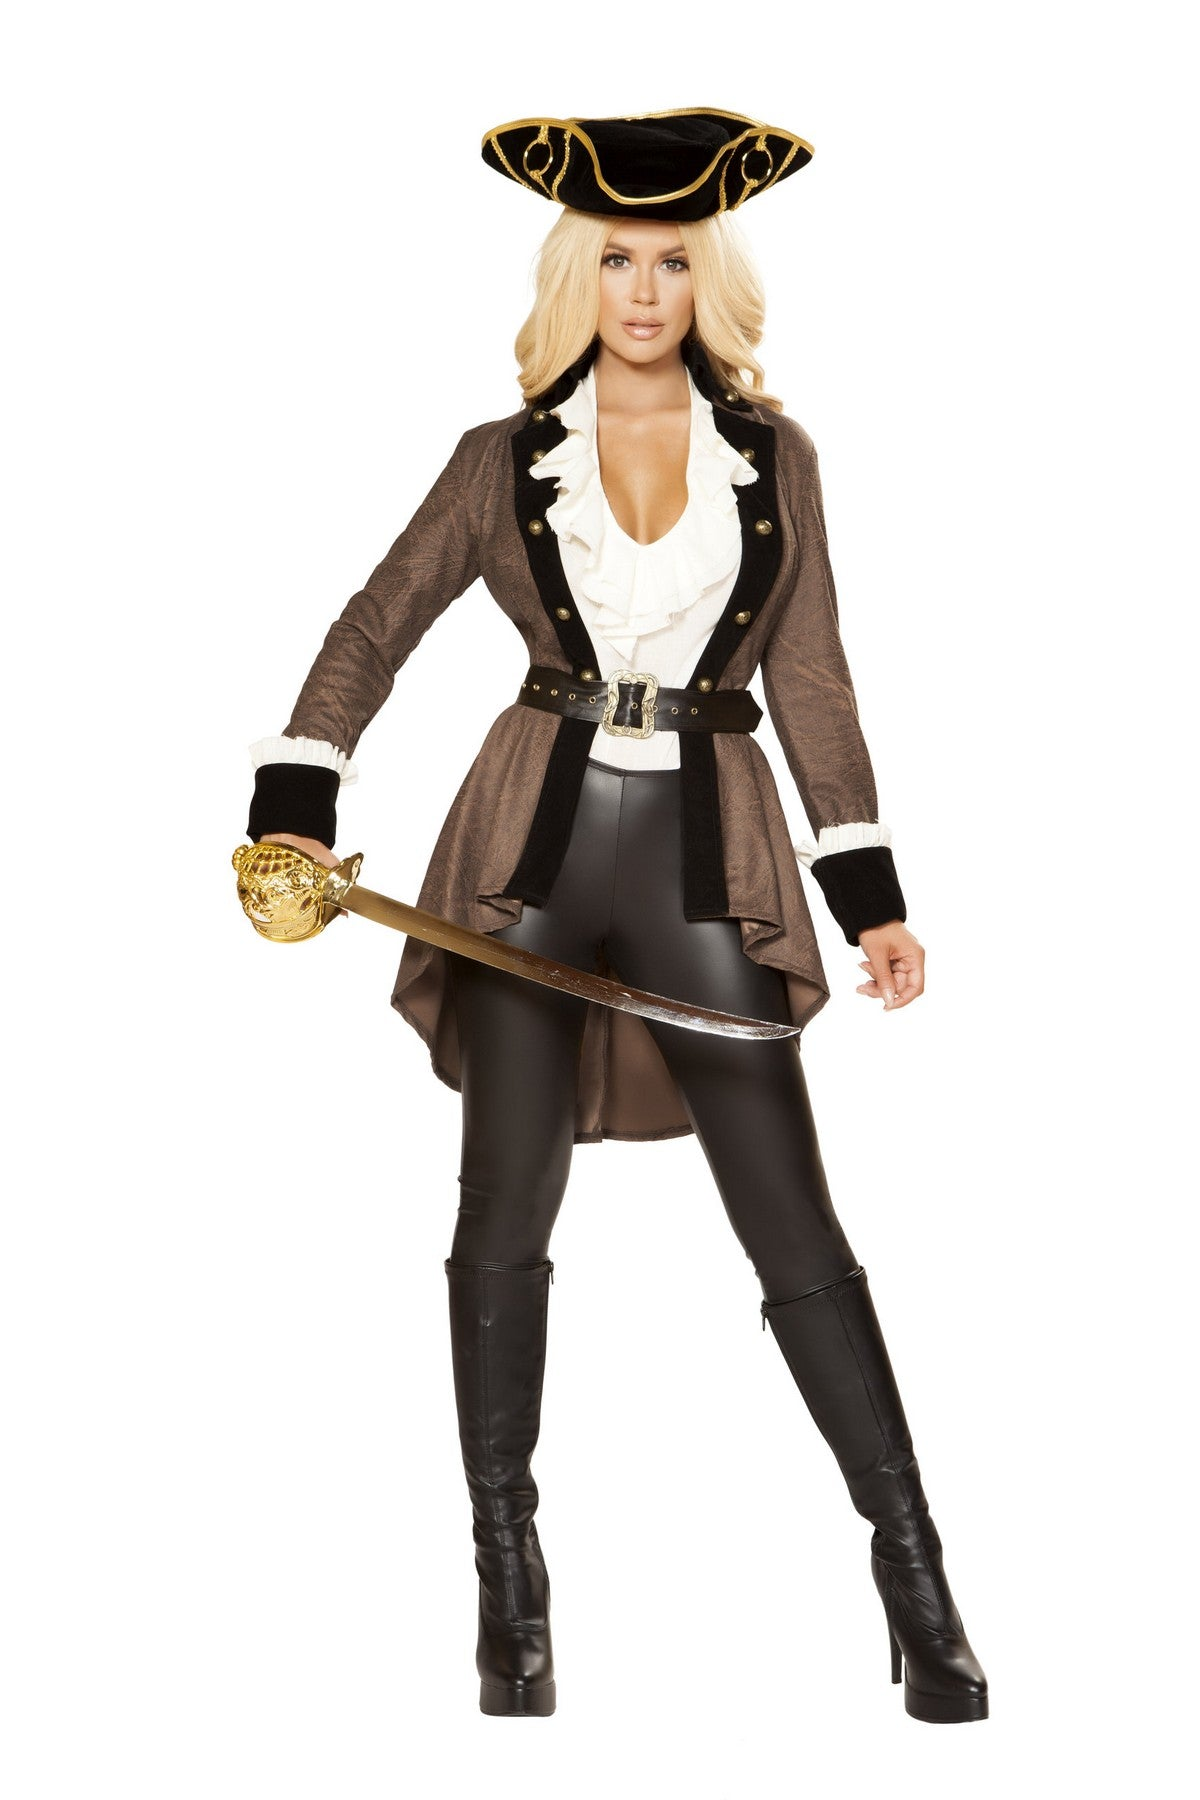 Deluxe Pirate Diva Costume Set